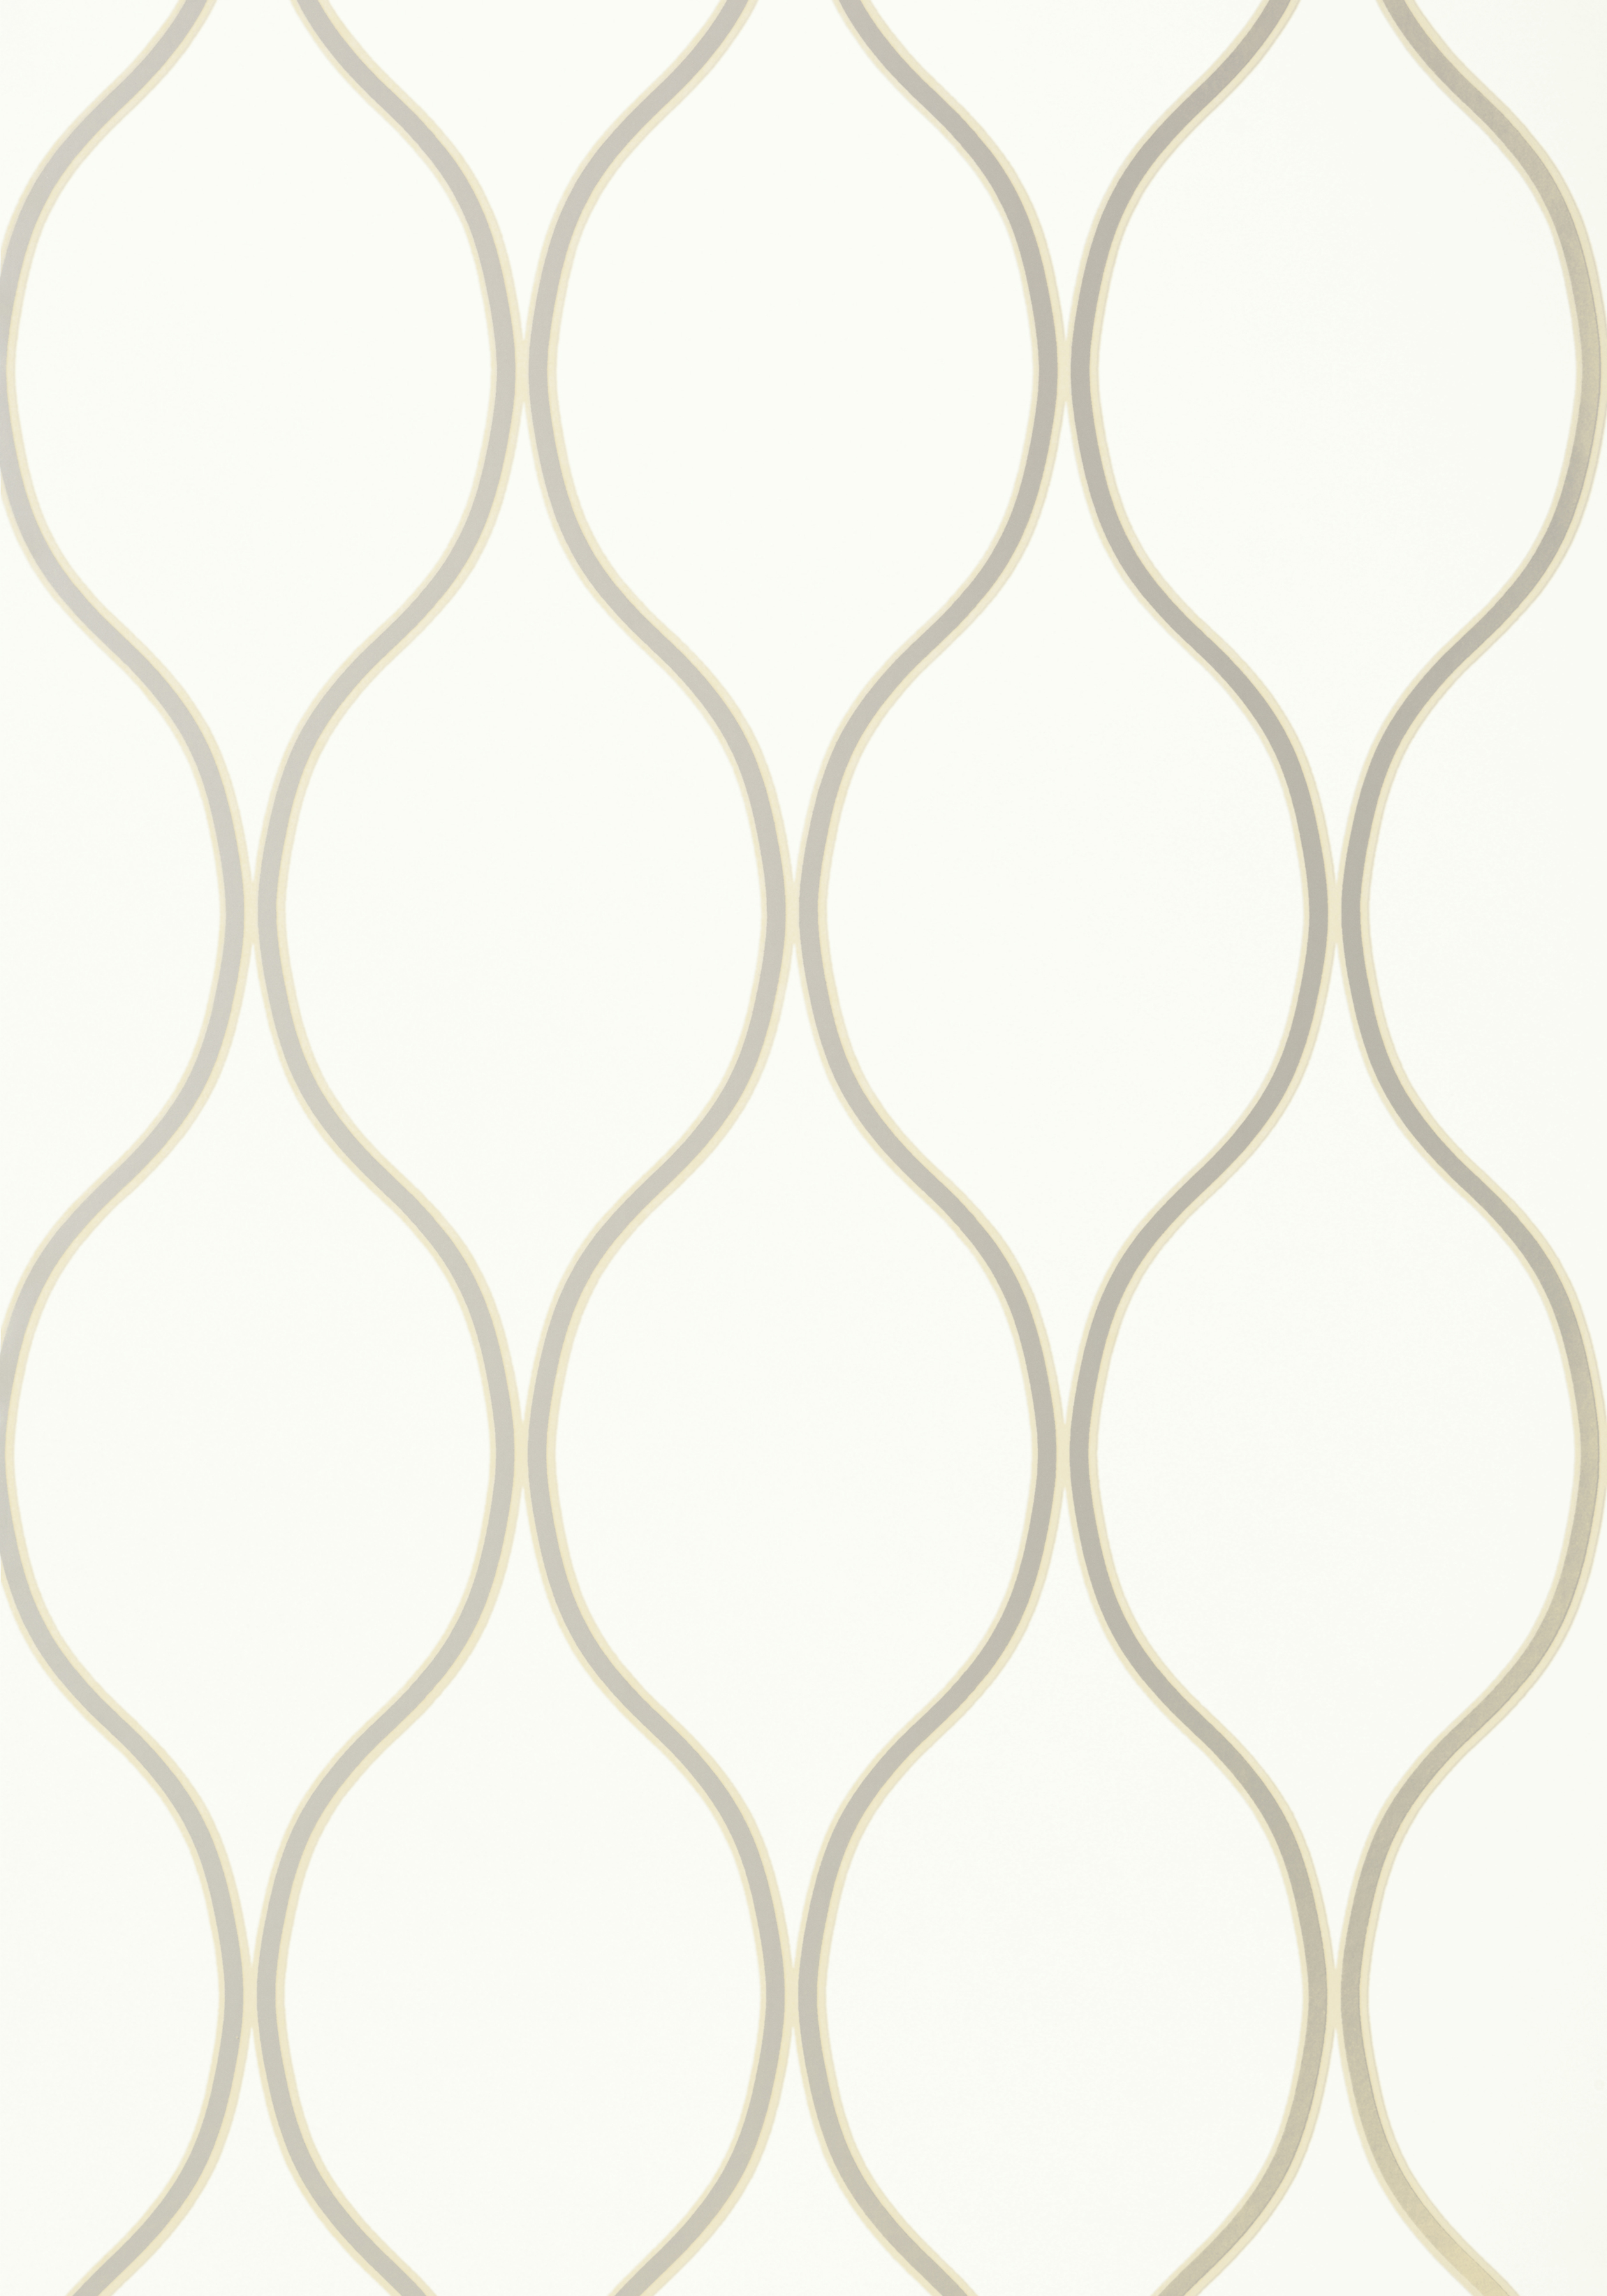 CAMBER-Pearl-T-Collection-Geometric-Resource-from-Thibaut-wallpaper-wp3004103